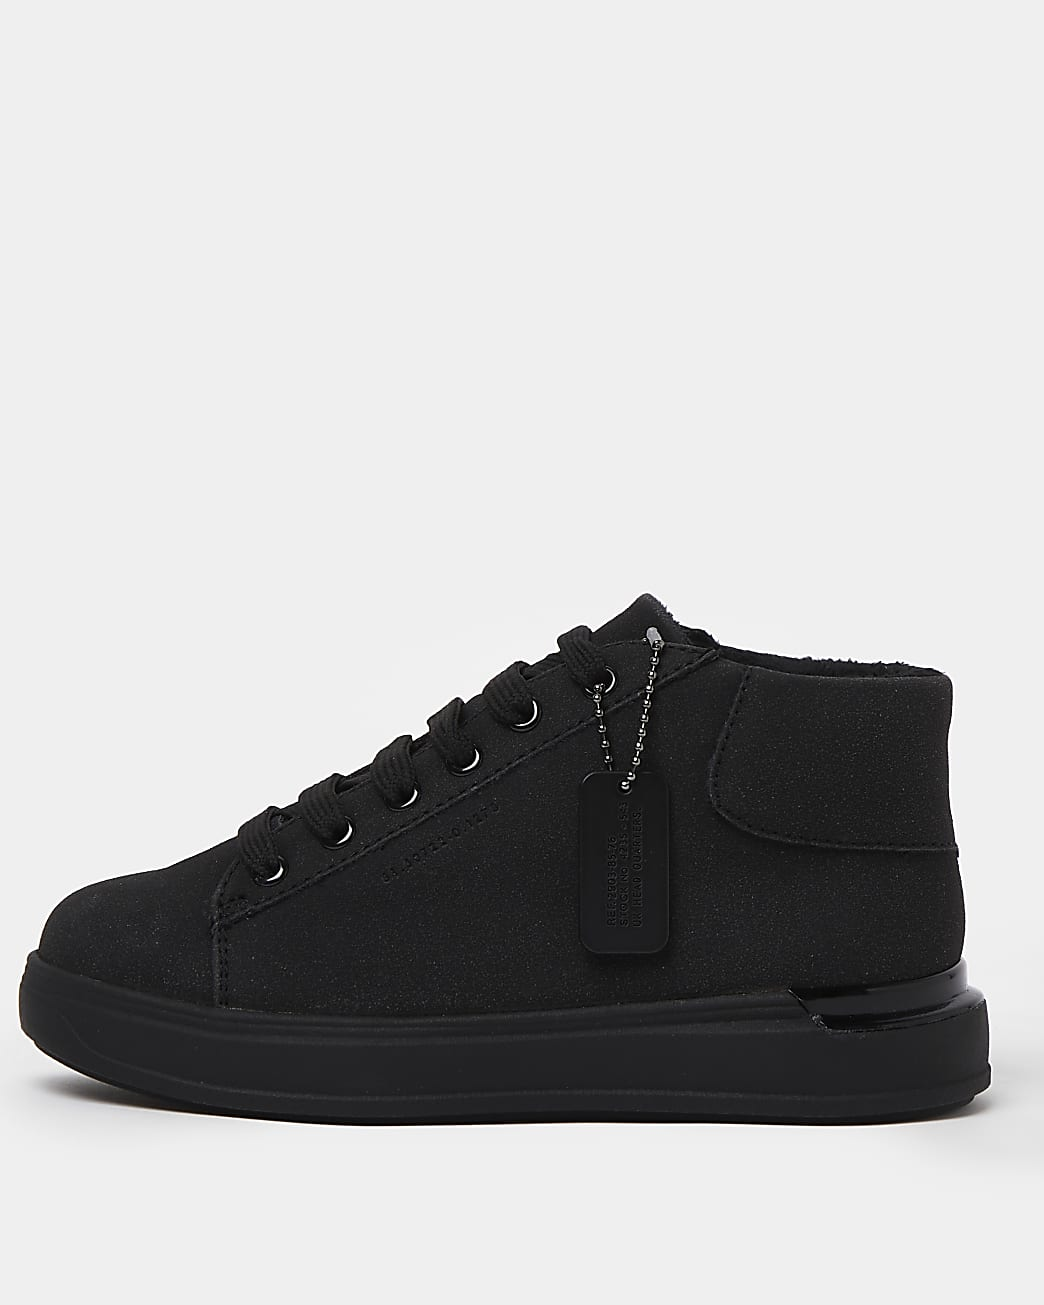 Boys black wedge heel lace up trainers